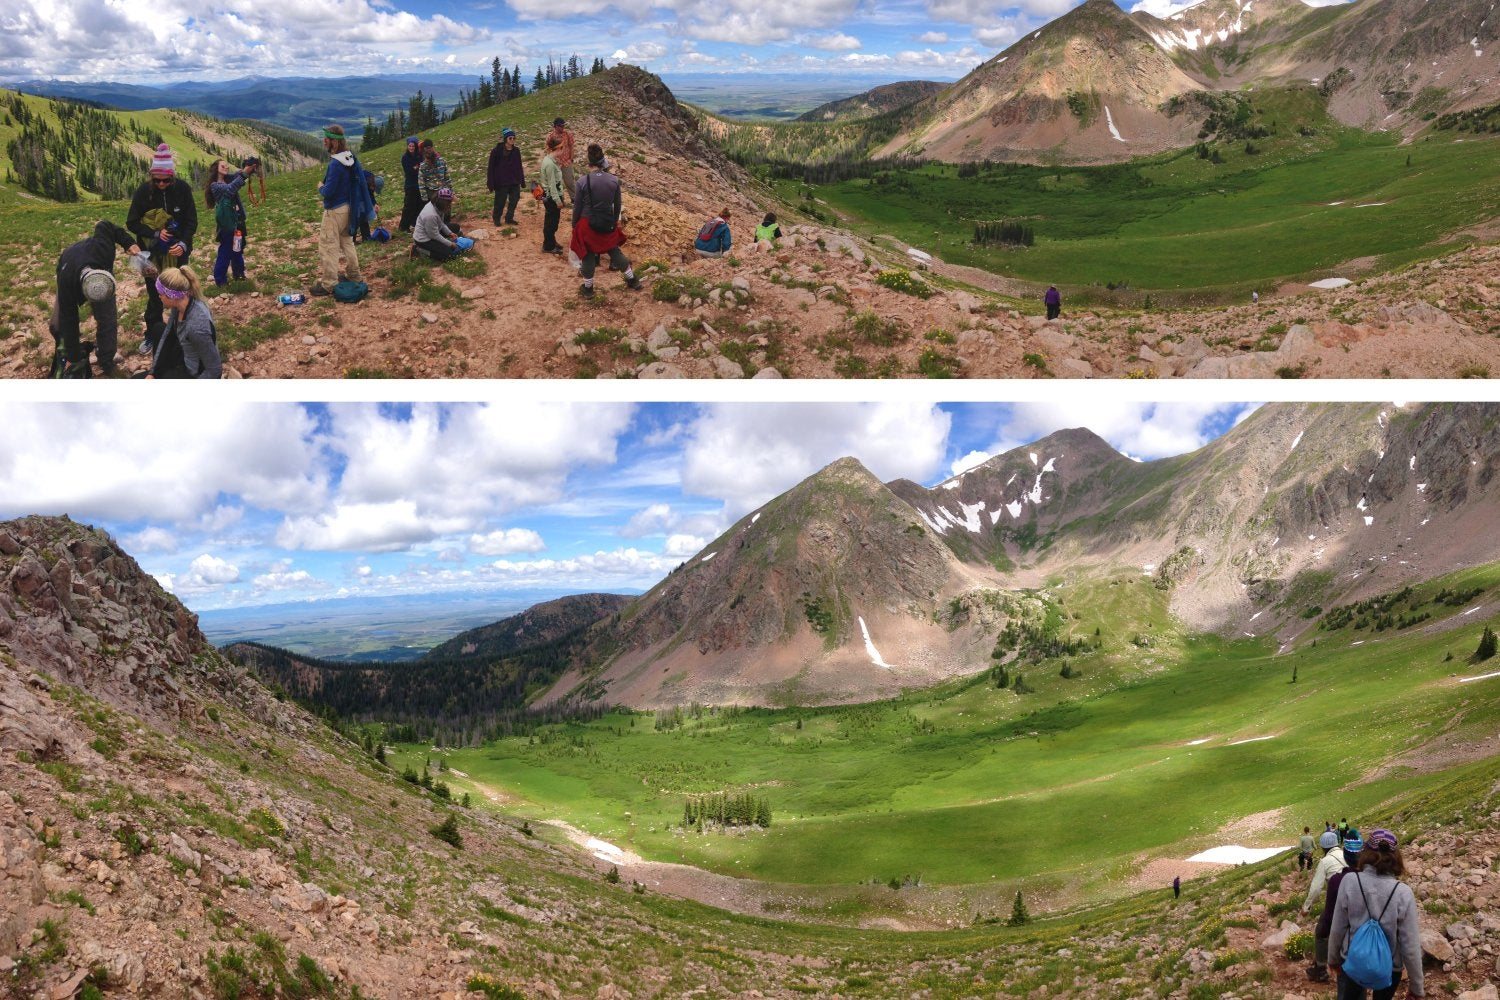 Hiking group on mountain